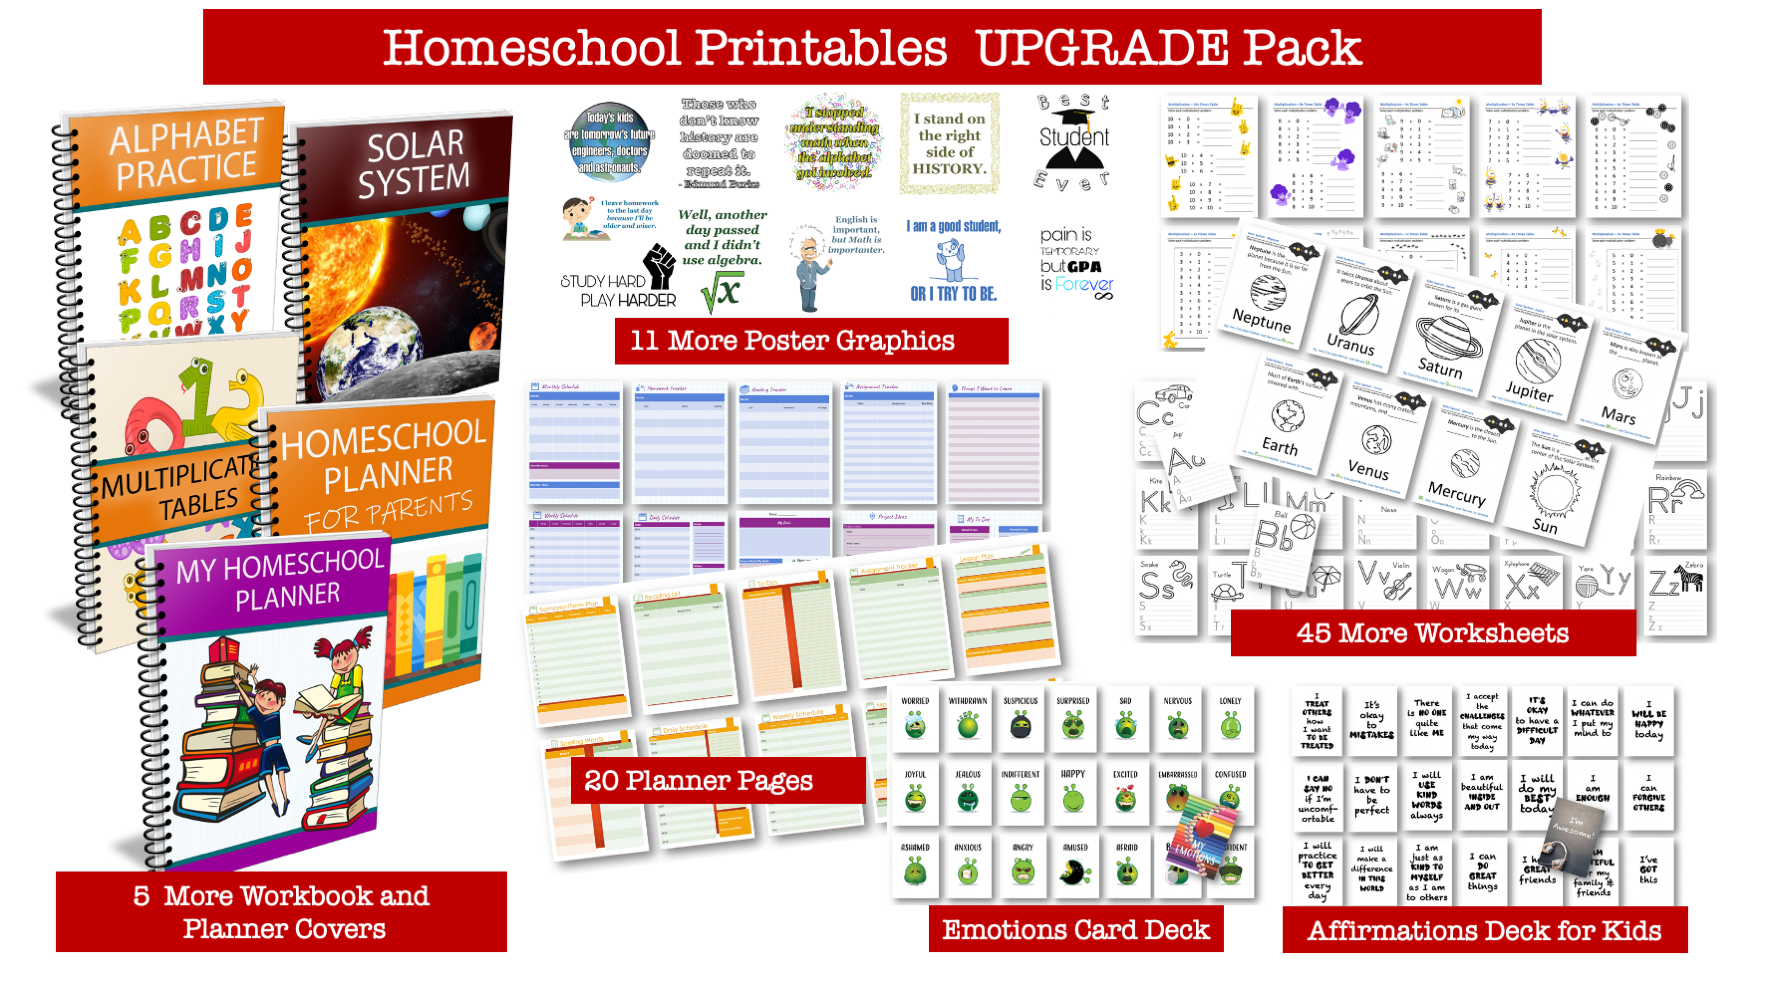 More Homeschooling Printables